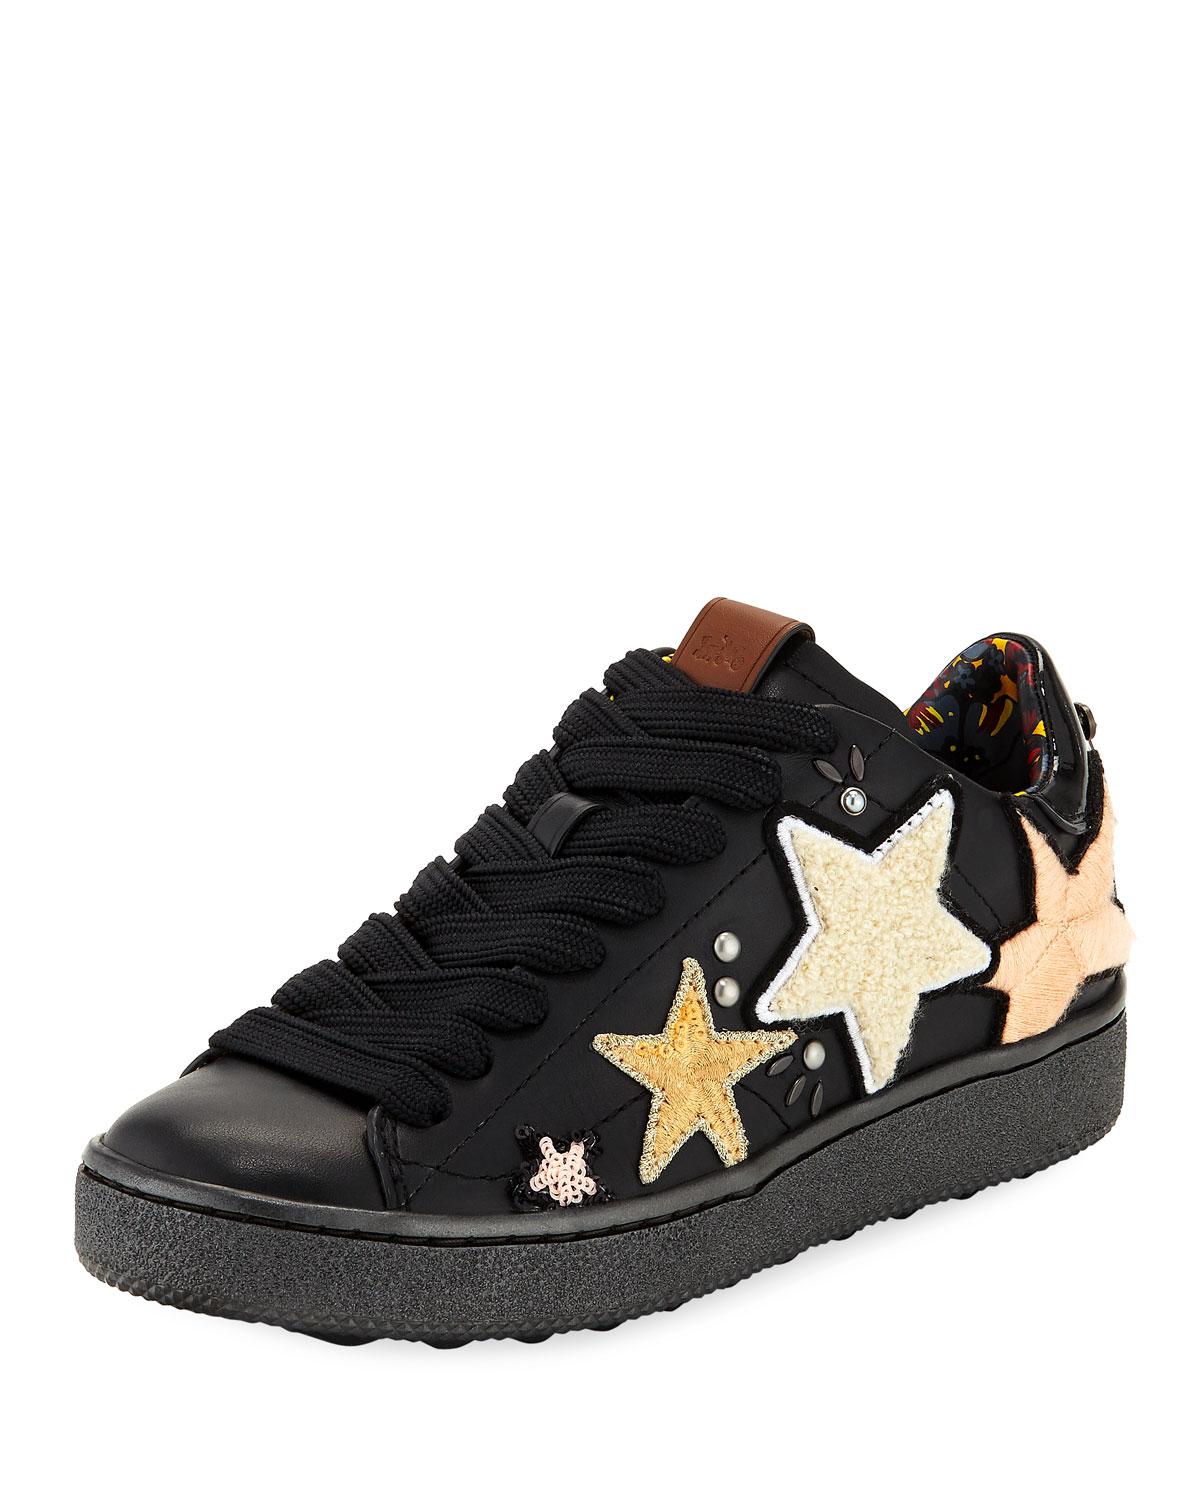 377d797a2e C101 Sneakers with Cloud Patches